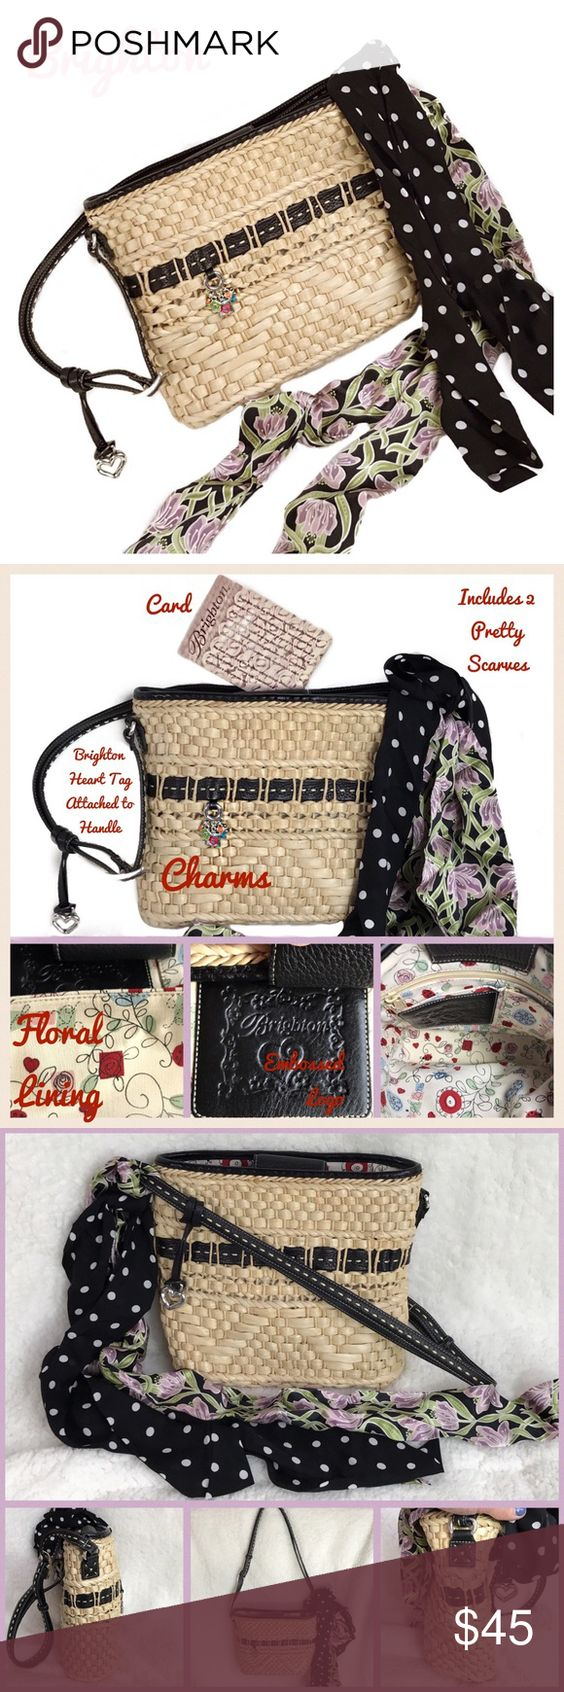 """Brighton Straw-Leather Cross Body-Handbag Great Gift 🎁 Brighton Weaved Straw Basket Cross Body  Shoulder Bag with Leather Trim and Charms- Fully Adjustable Strap-Pebbled Leather Magnetic Closure-INCLUDES 2 SCARVES  Bag Length-10.5"""" Bag Height-9.25""""  Depth-4.5"""" EUC- ❤️ This Brighton Bag has so many features- ❤️ Please see pics for more info   ☑️  You can make offers and bundle!!! ☑️  Have Fun Poshing...                                    Thank you-Deb👢        @bootz1342 Brighton Bags"""